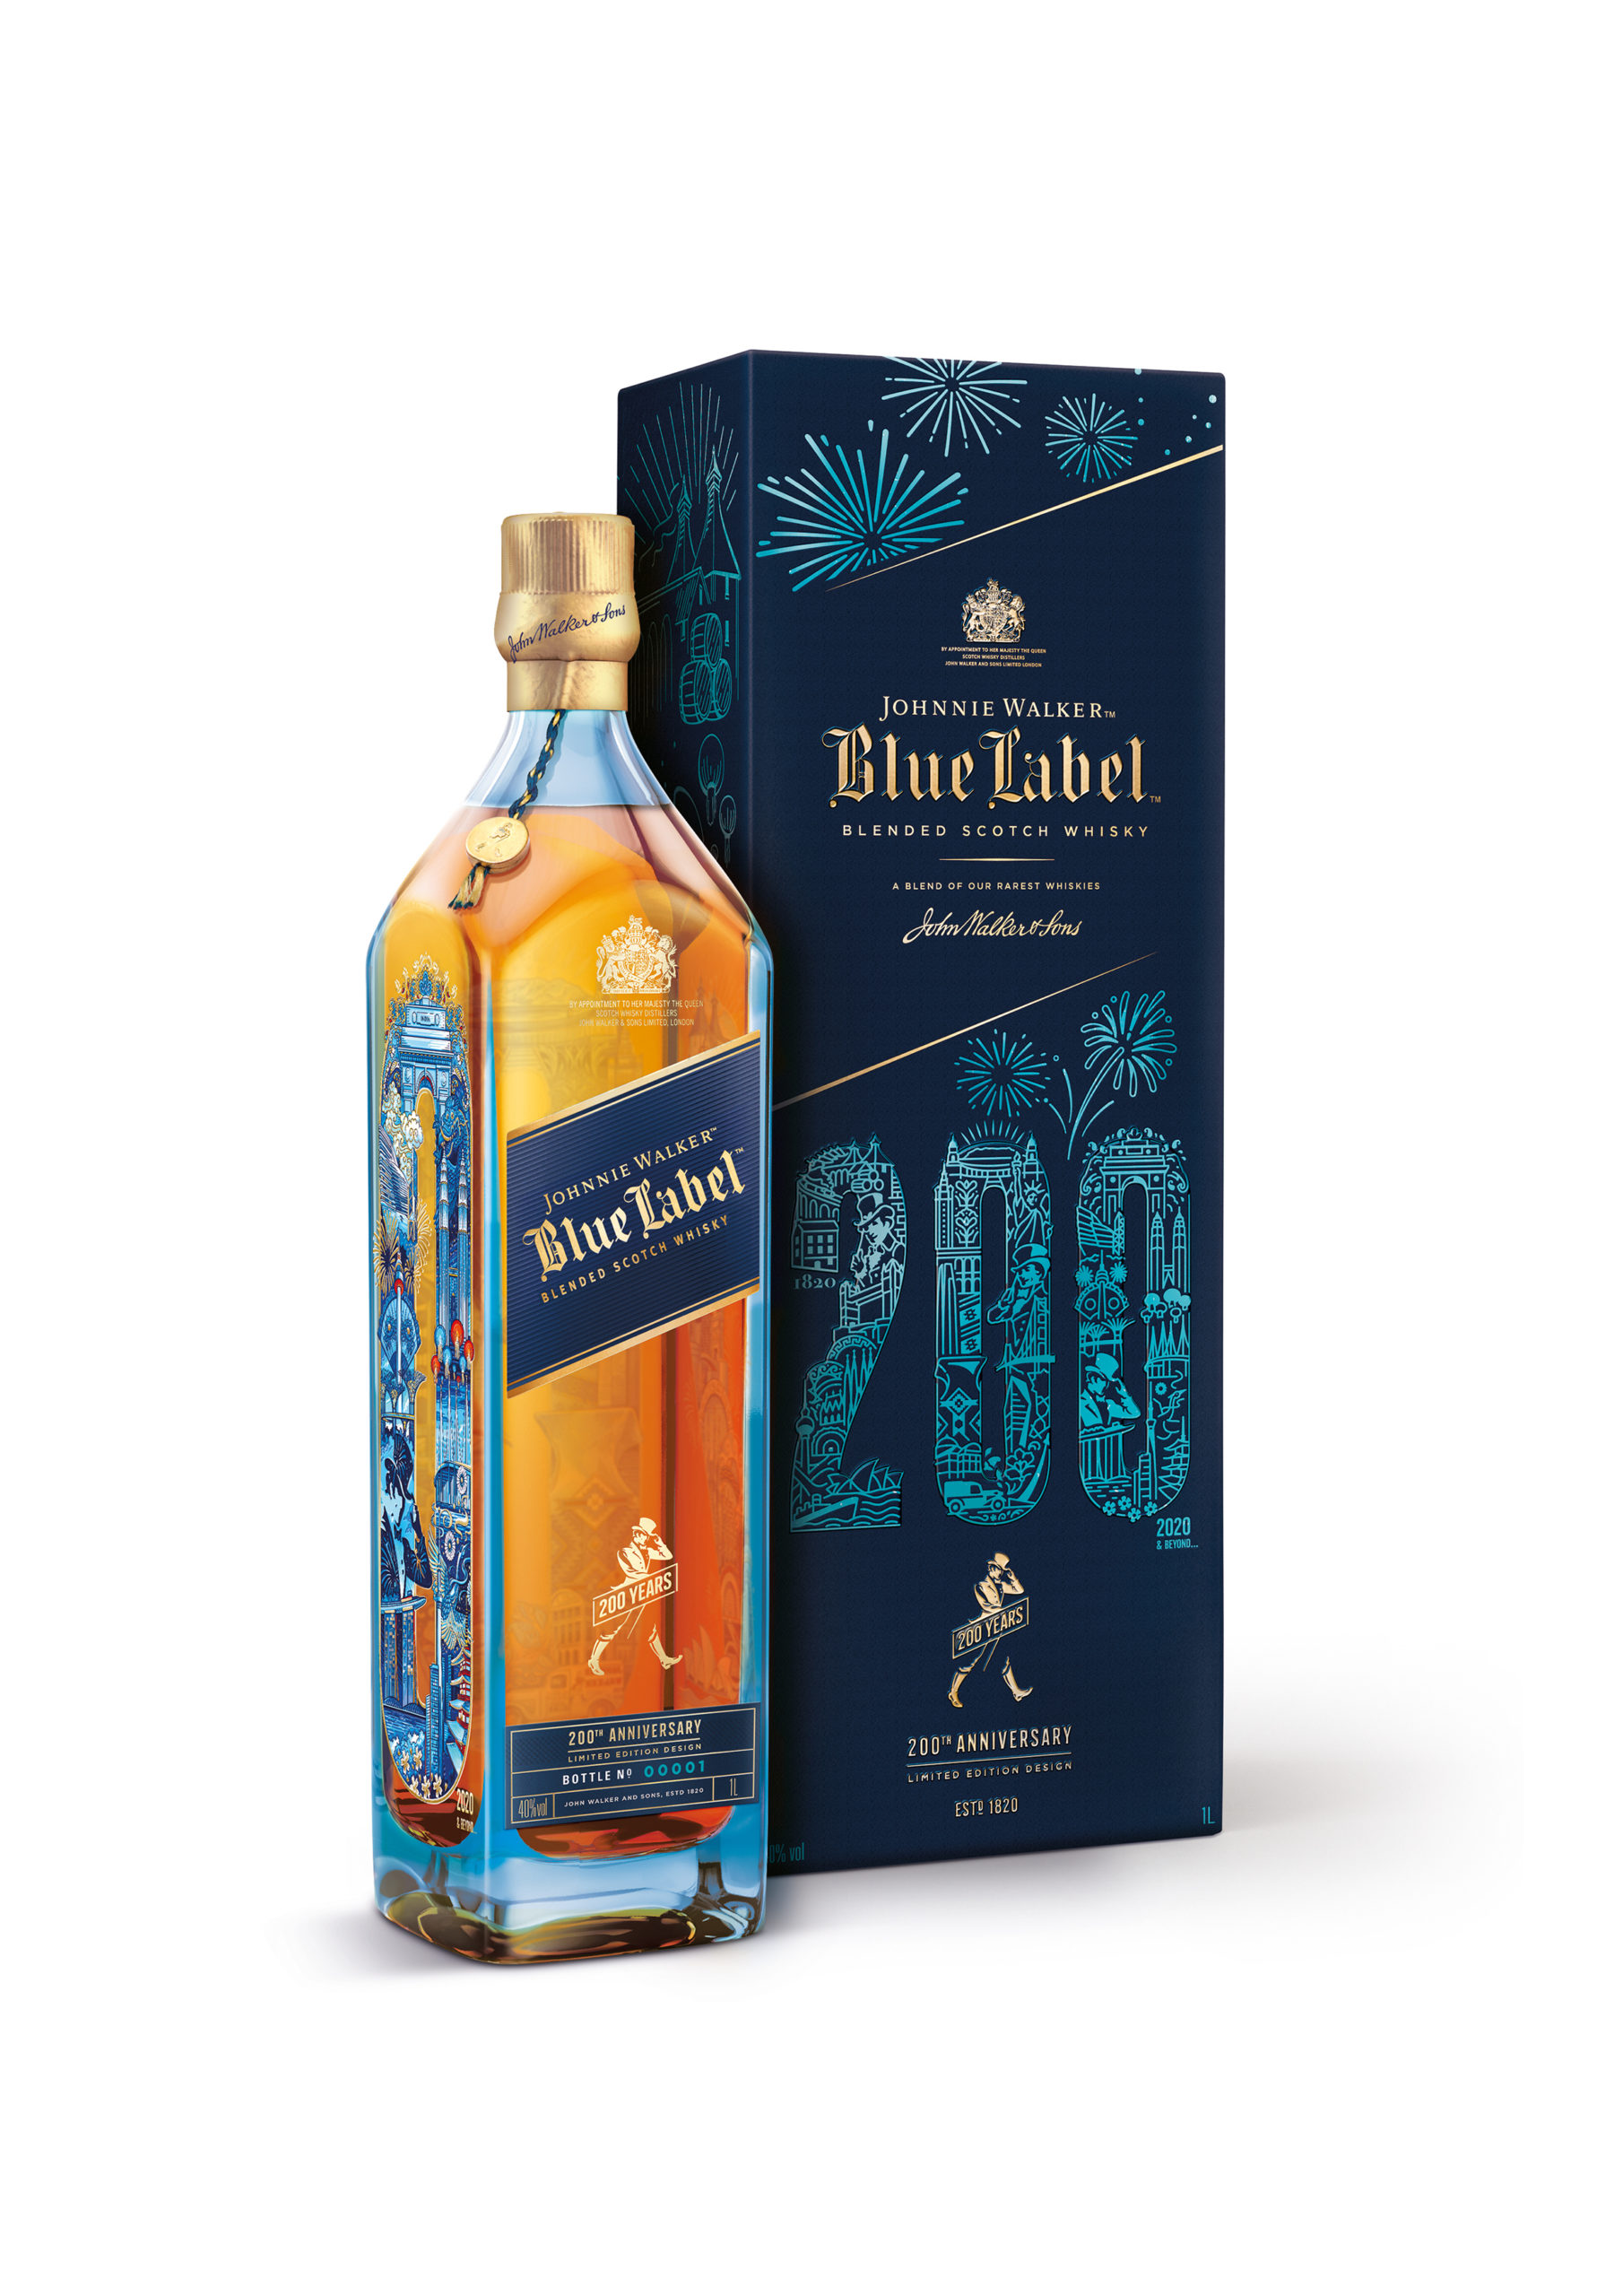 Johnnie Walker celebrates 200th anniversary with four exclusive releases (Photos) - Brand Spur